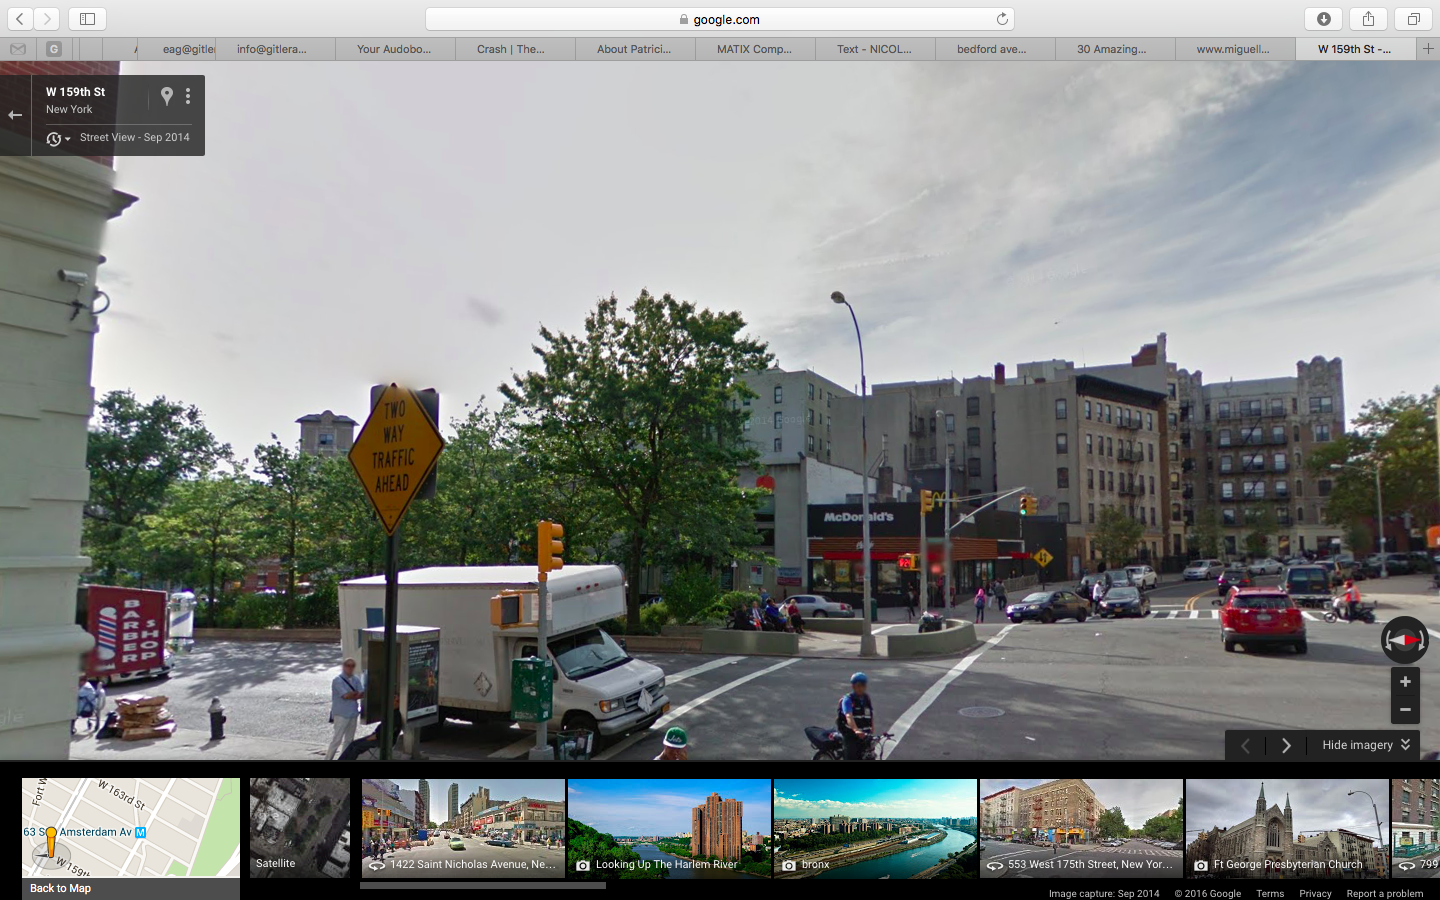 fort washington ave - 159 and broadway 1/3